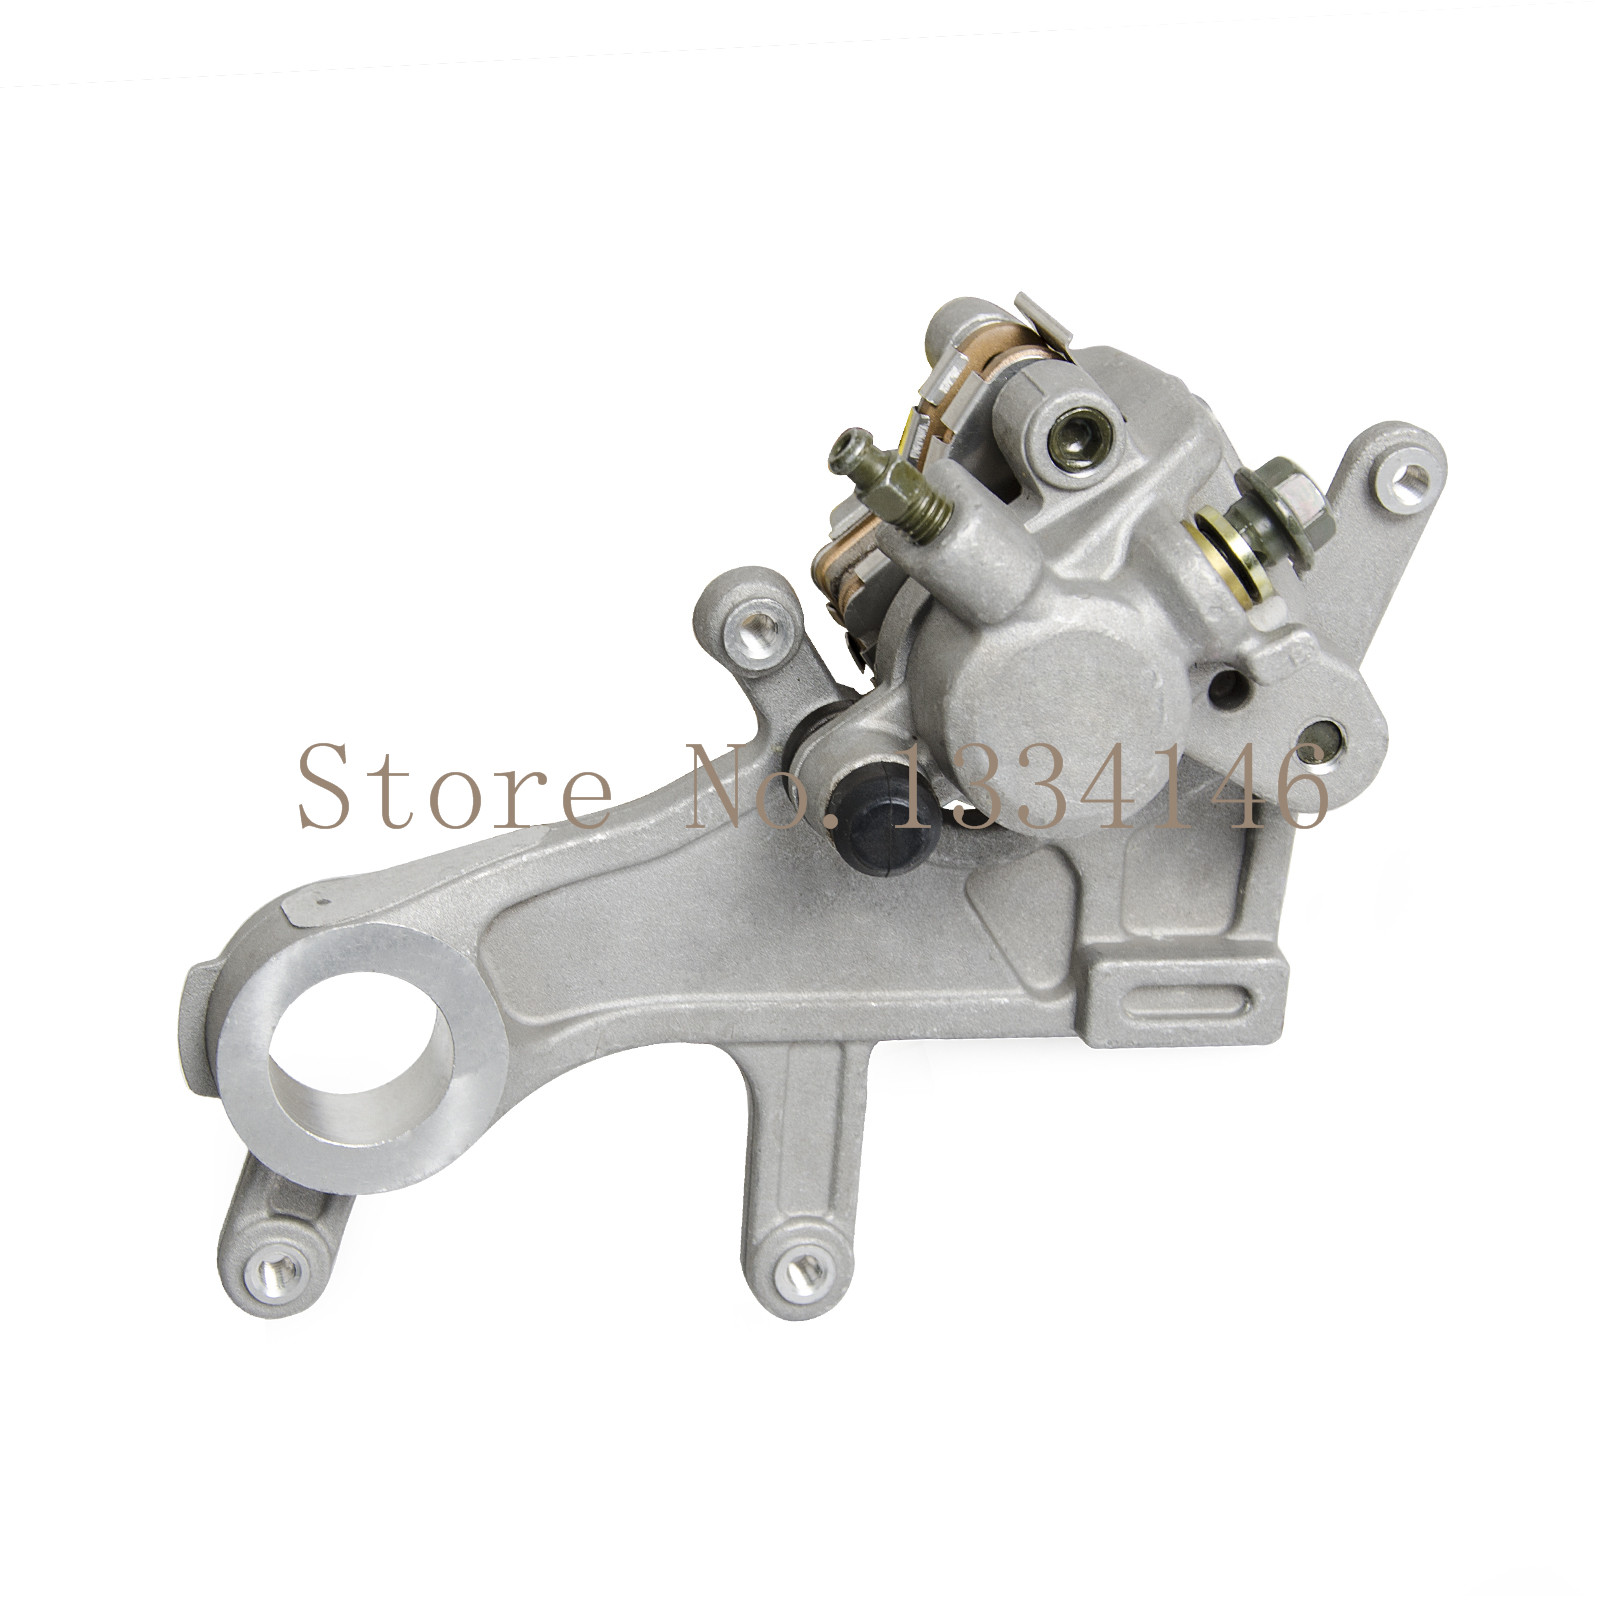 hight resolution of detail feedback questions about motorcycle rear brake caliper for honda crf450r 2002 2015 2016 crf450x crf 450r 450x 2005 2006 on aliexpress com alibaba